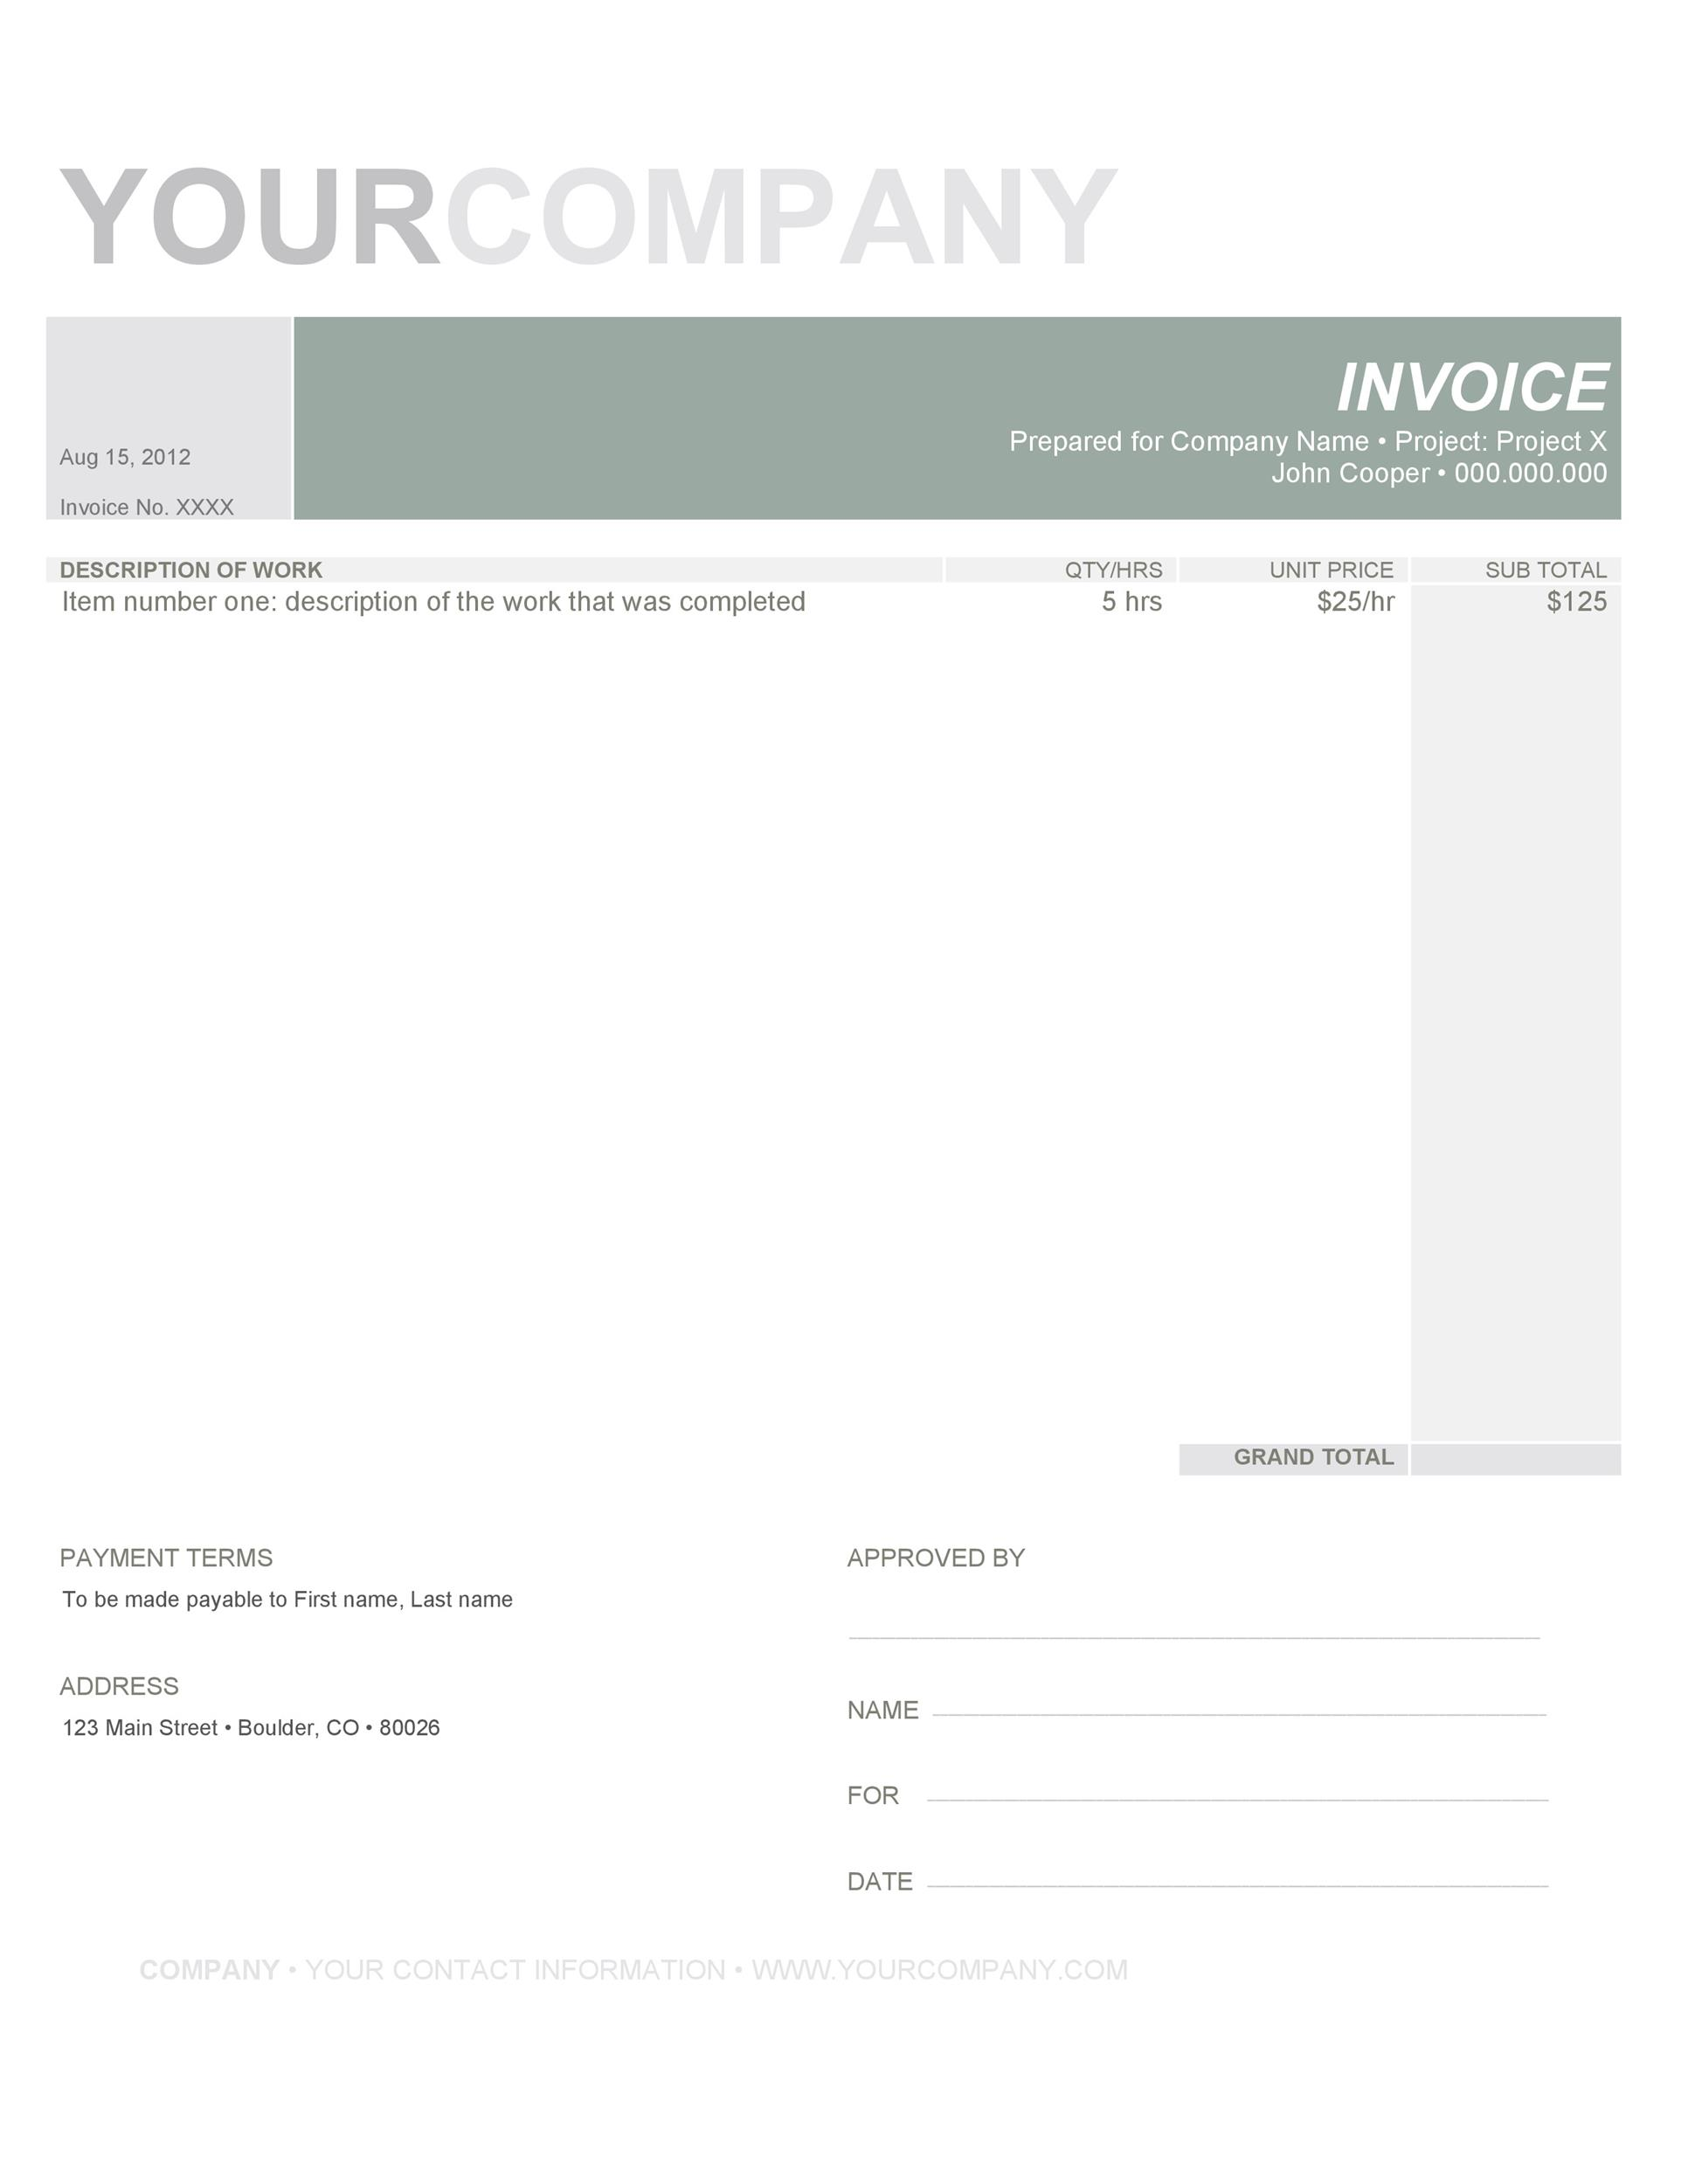 Global Depository Receipts Example Excel  Invoice Templates Blank Commercial Pdf Word Excel Basic Invoices with Invoice For Service Pdf Invoice Template  Invoice Creator Excel